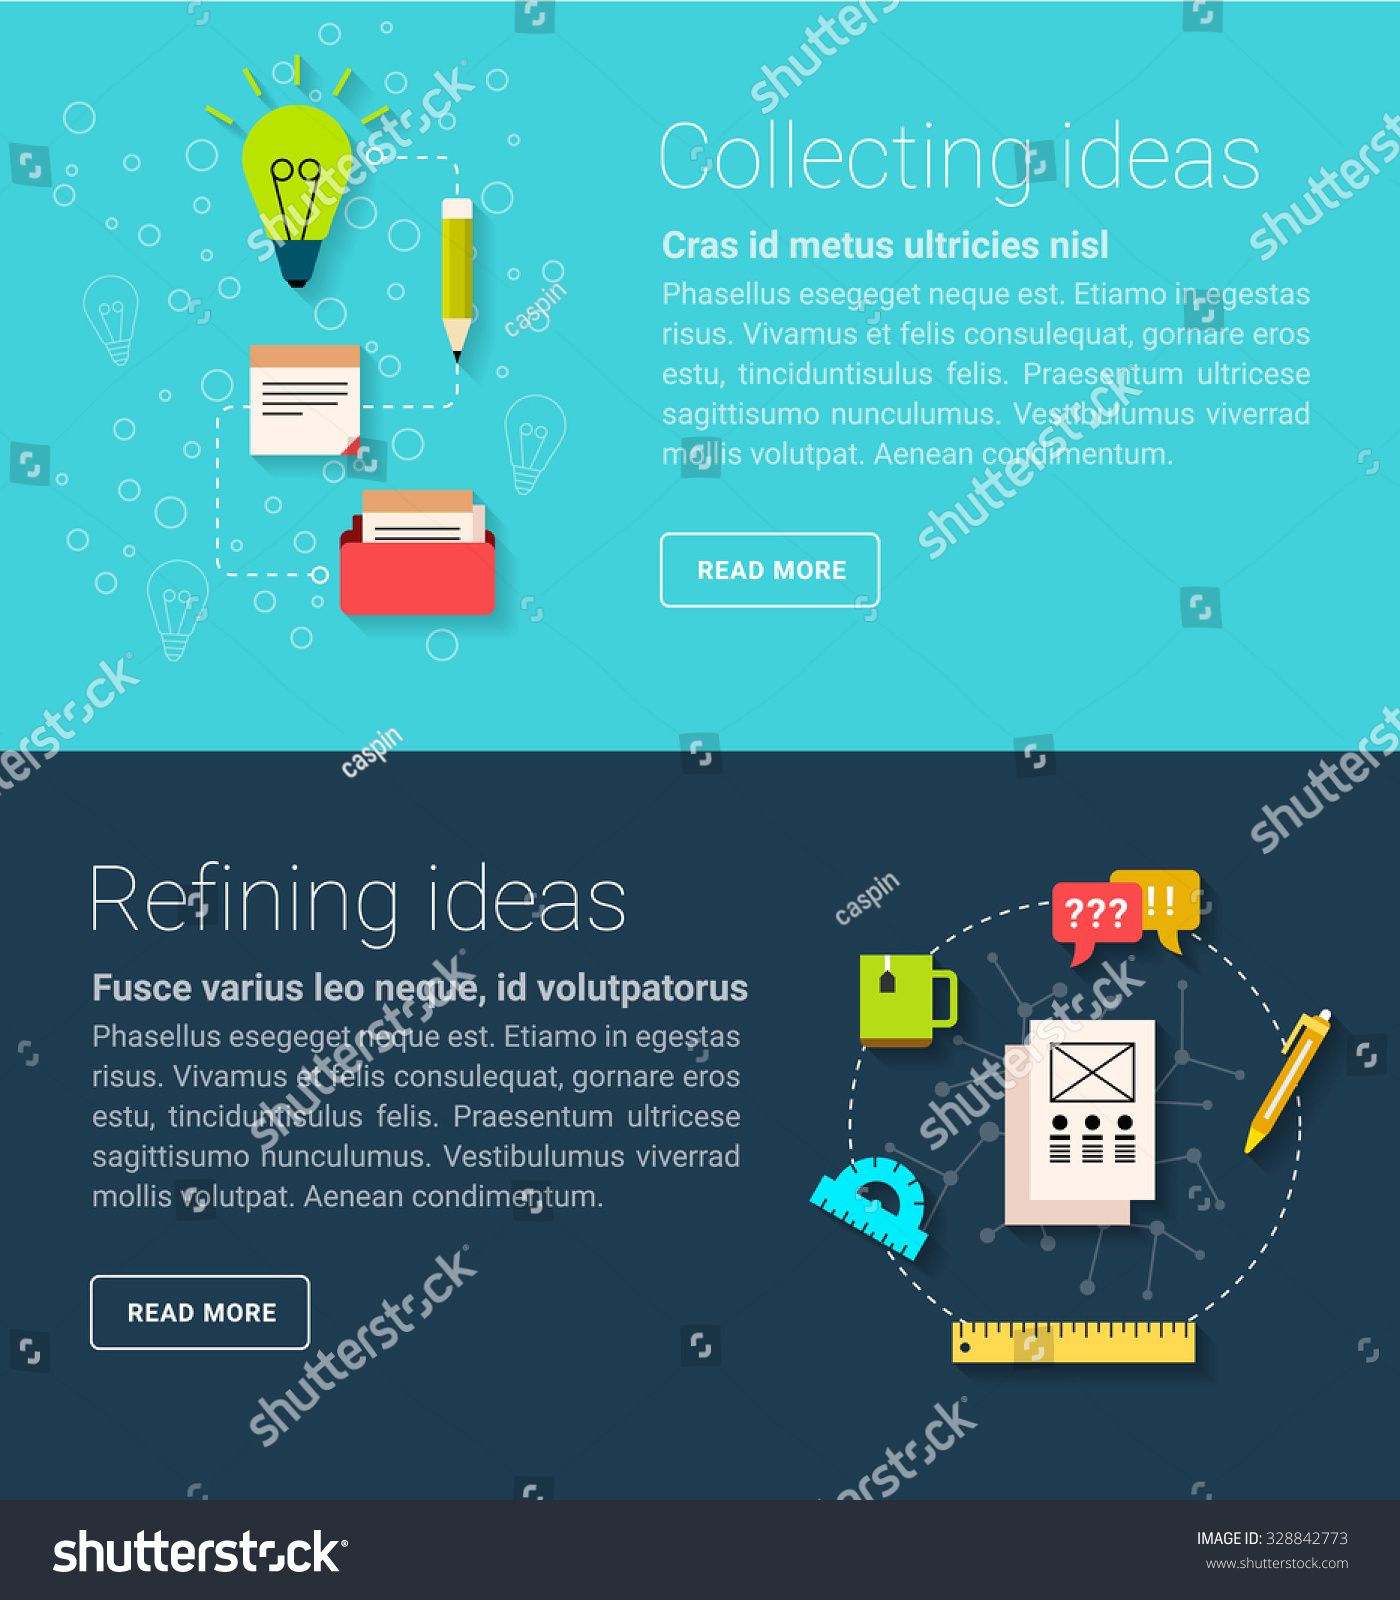 Concept Generating Gathering Ideas Banners Text Stock Vector (2018 ...